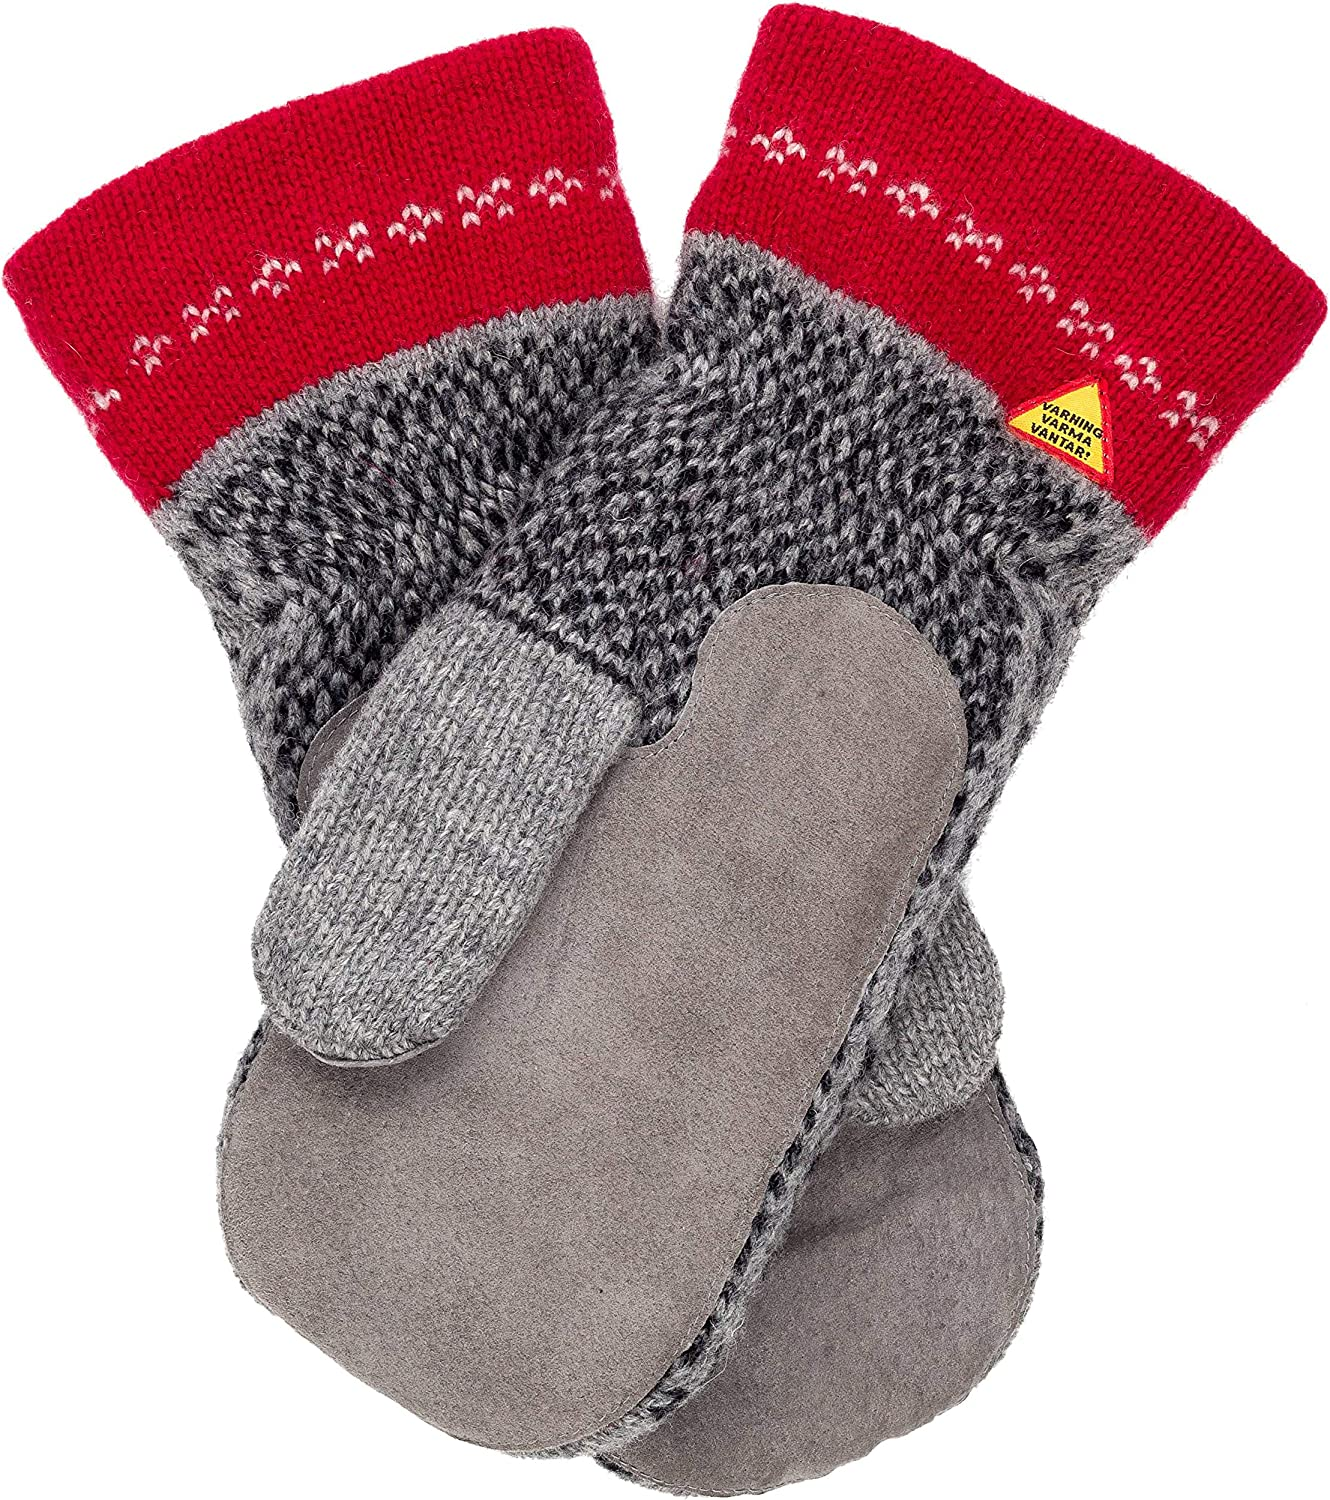 Öjbro Swedish made 100% Merino Wool Soft Thick & Extremely Warm Suede Palm Mittens (as Featured by the Raynauds Assn)